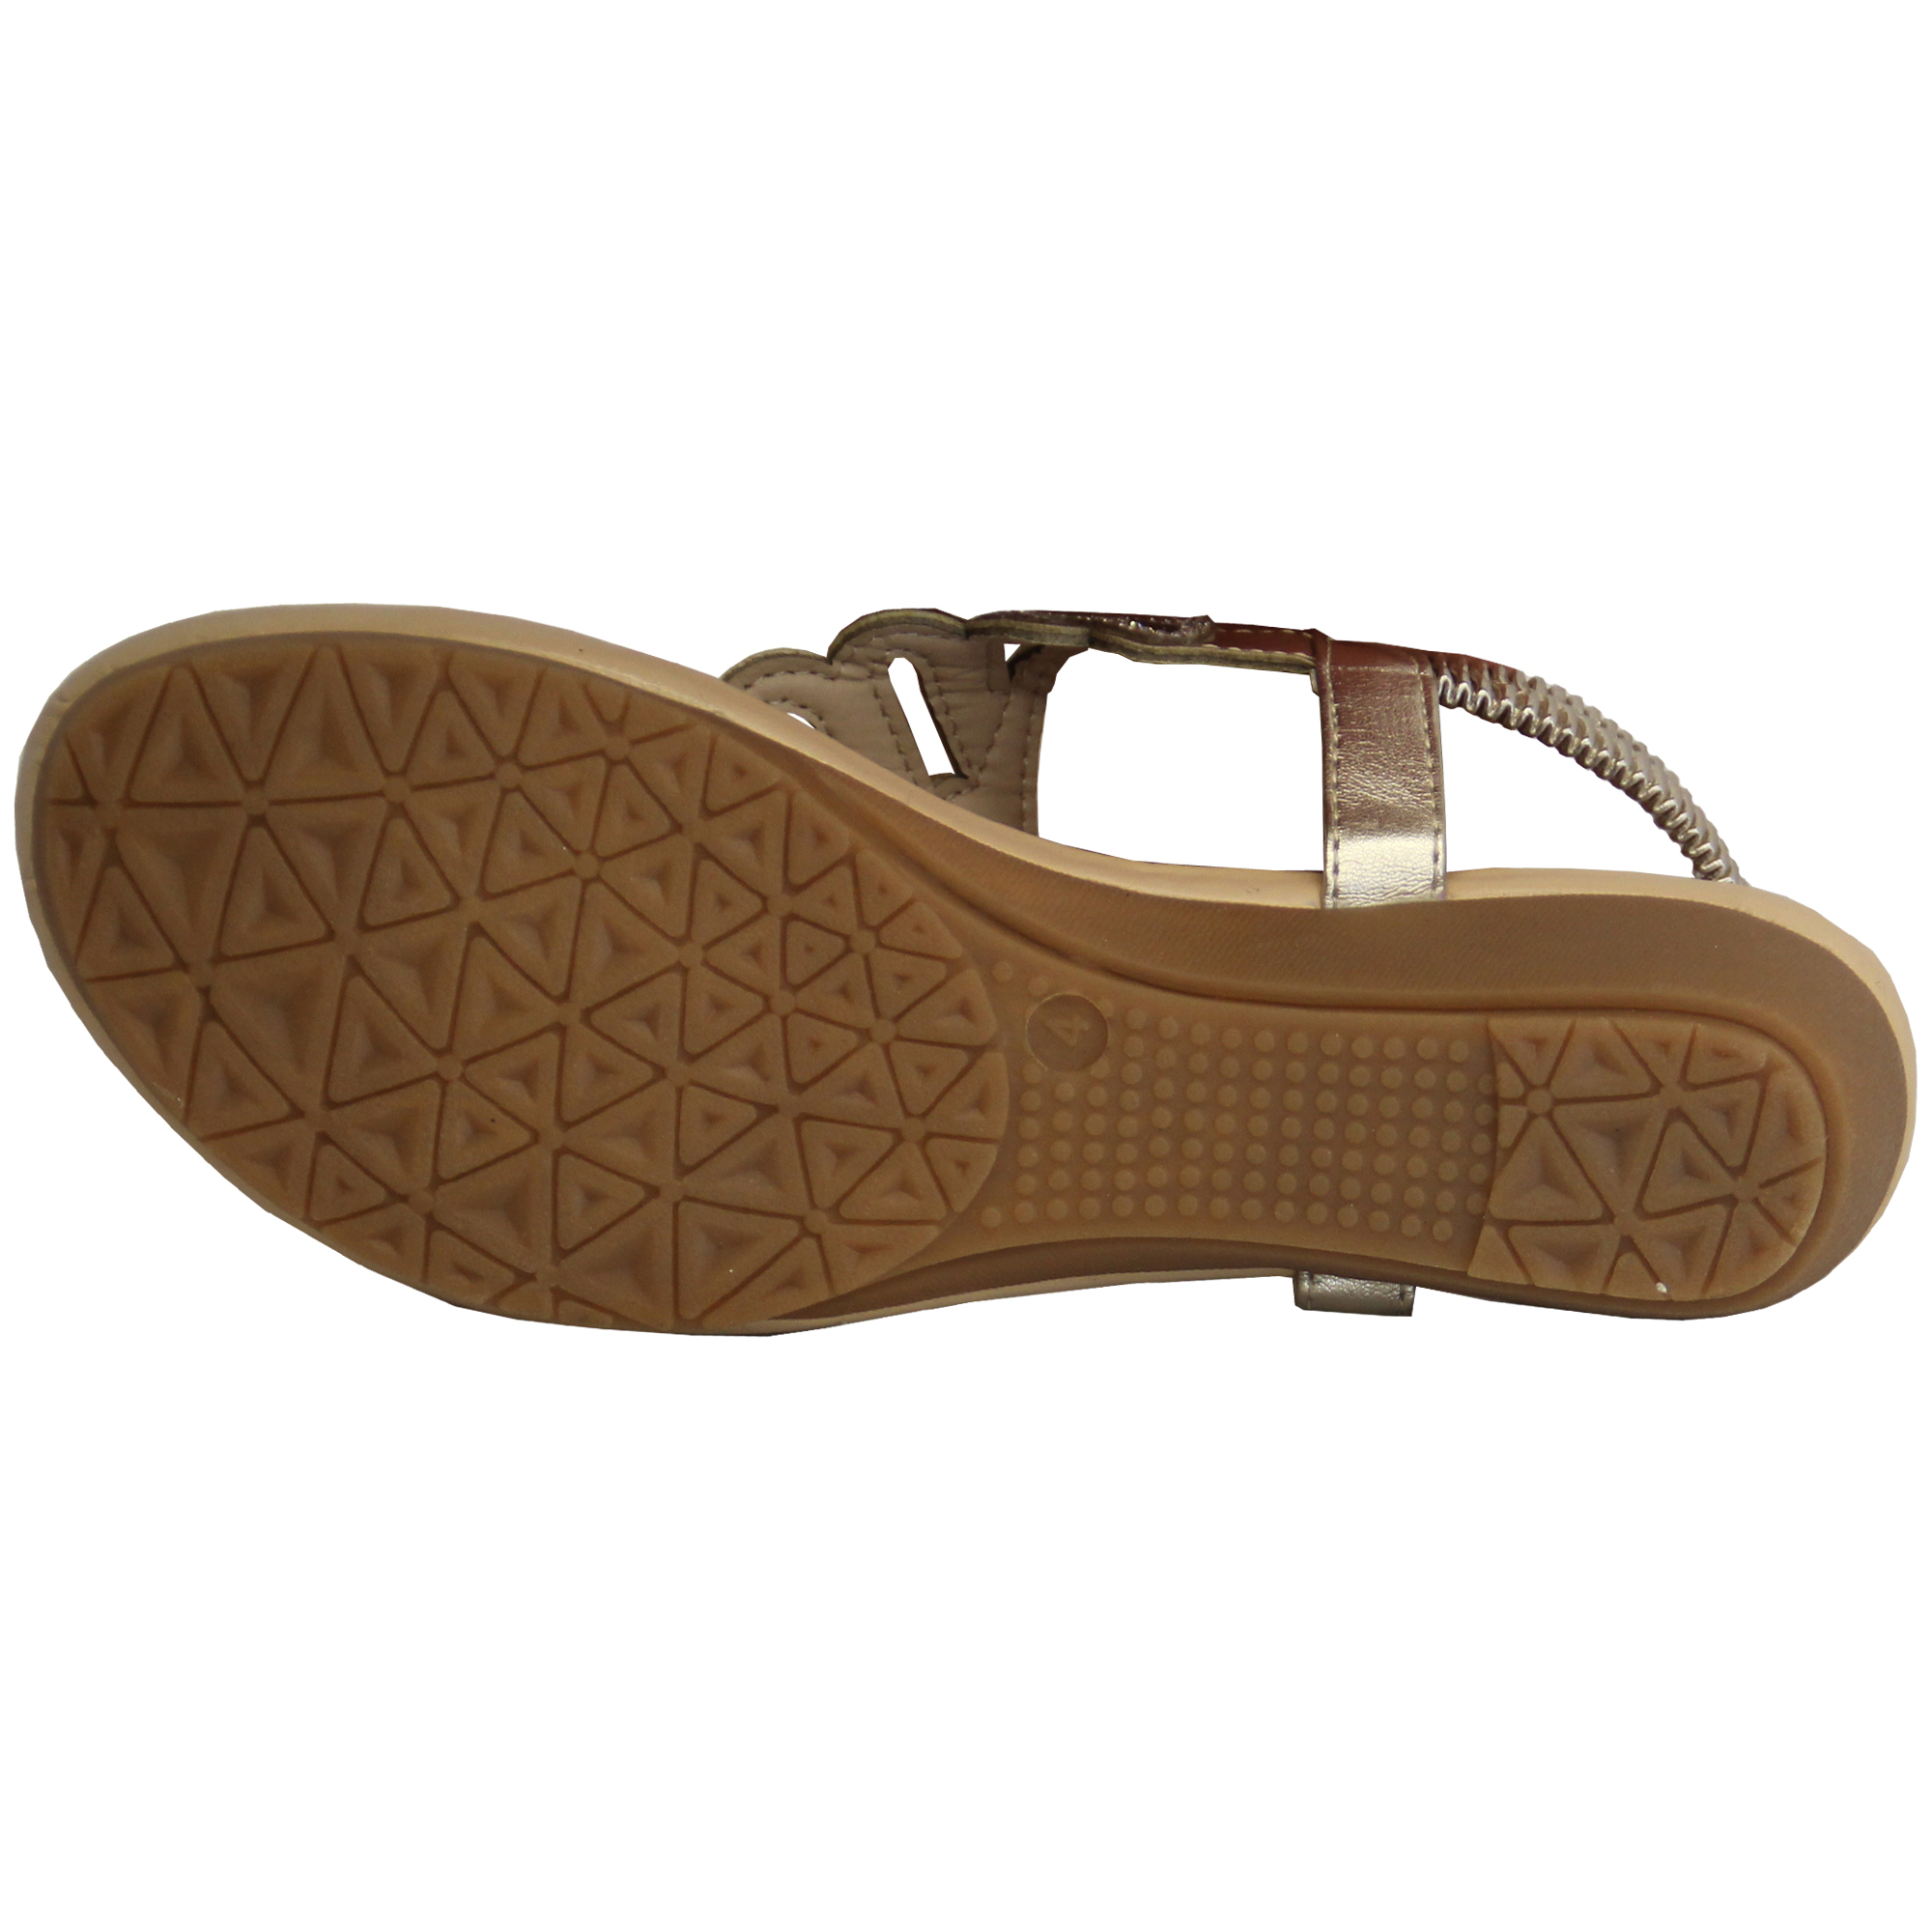 Ladies-Sandals-Kelsi-Womens-Diamante-Slip-On-Toe-Post-Shoes-Casual-Fashion-New thumbnail 19